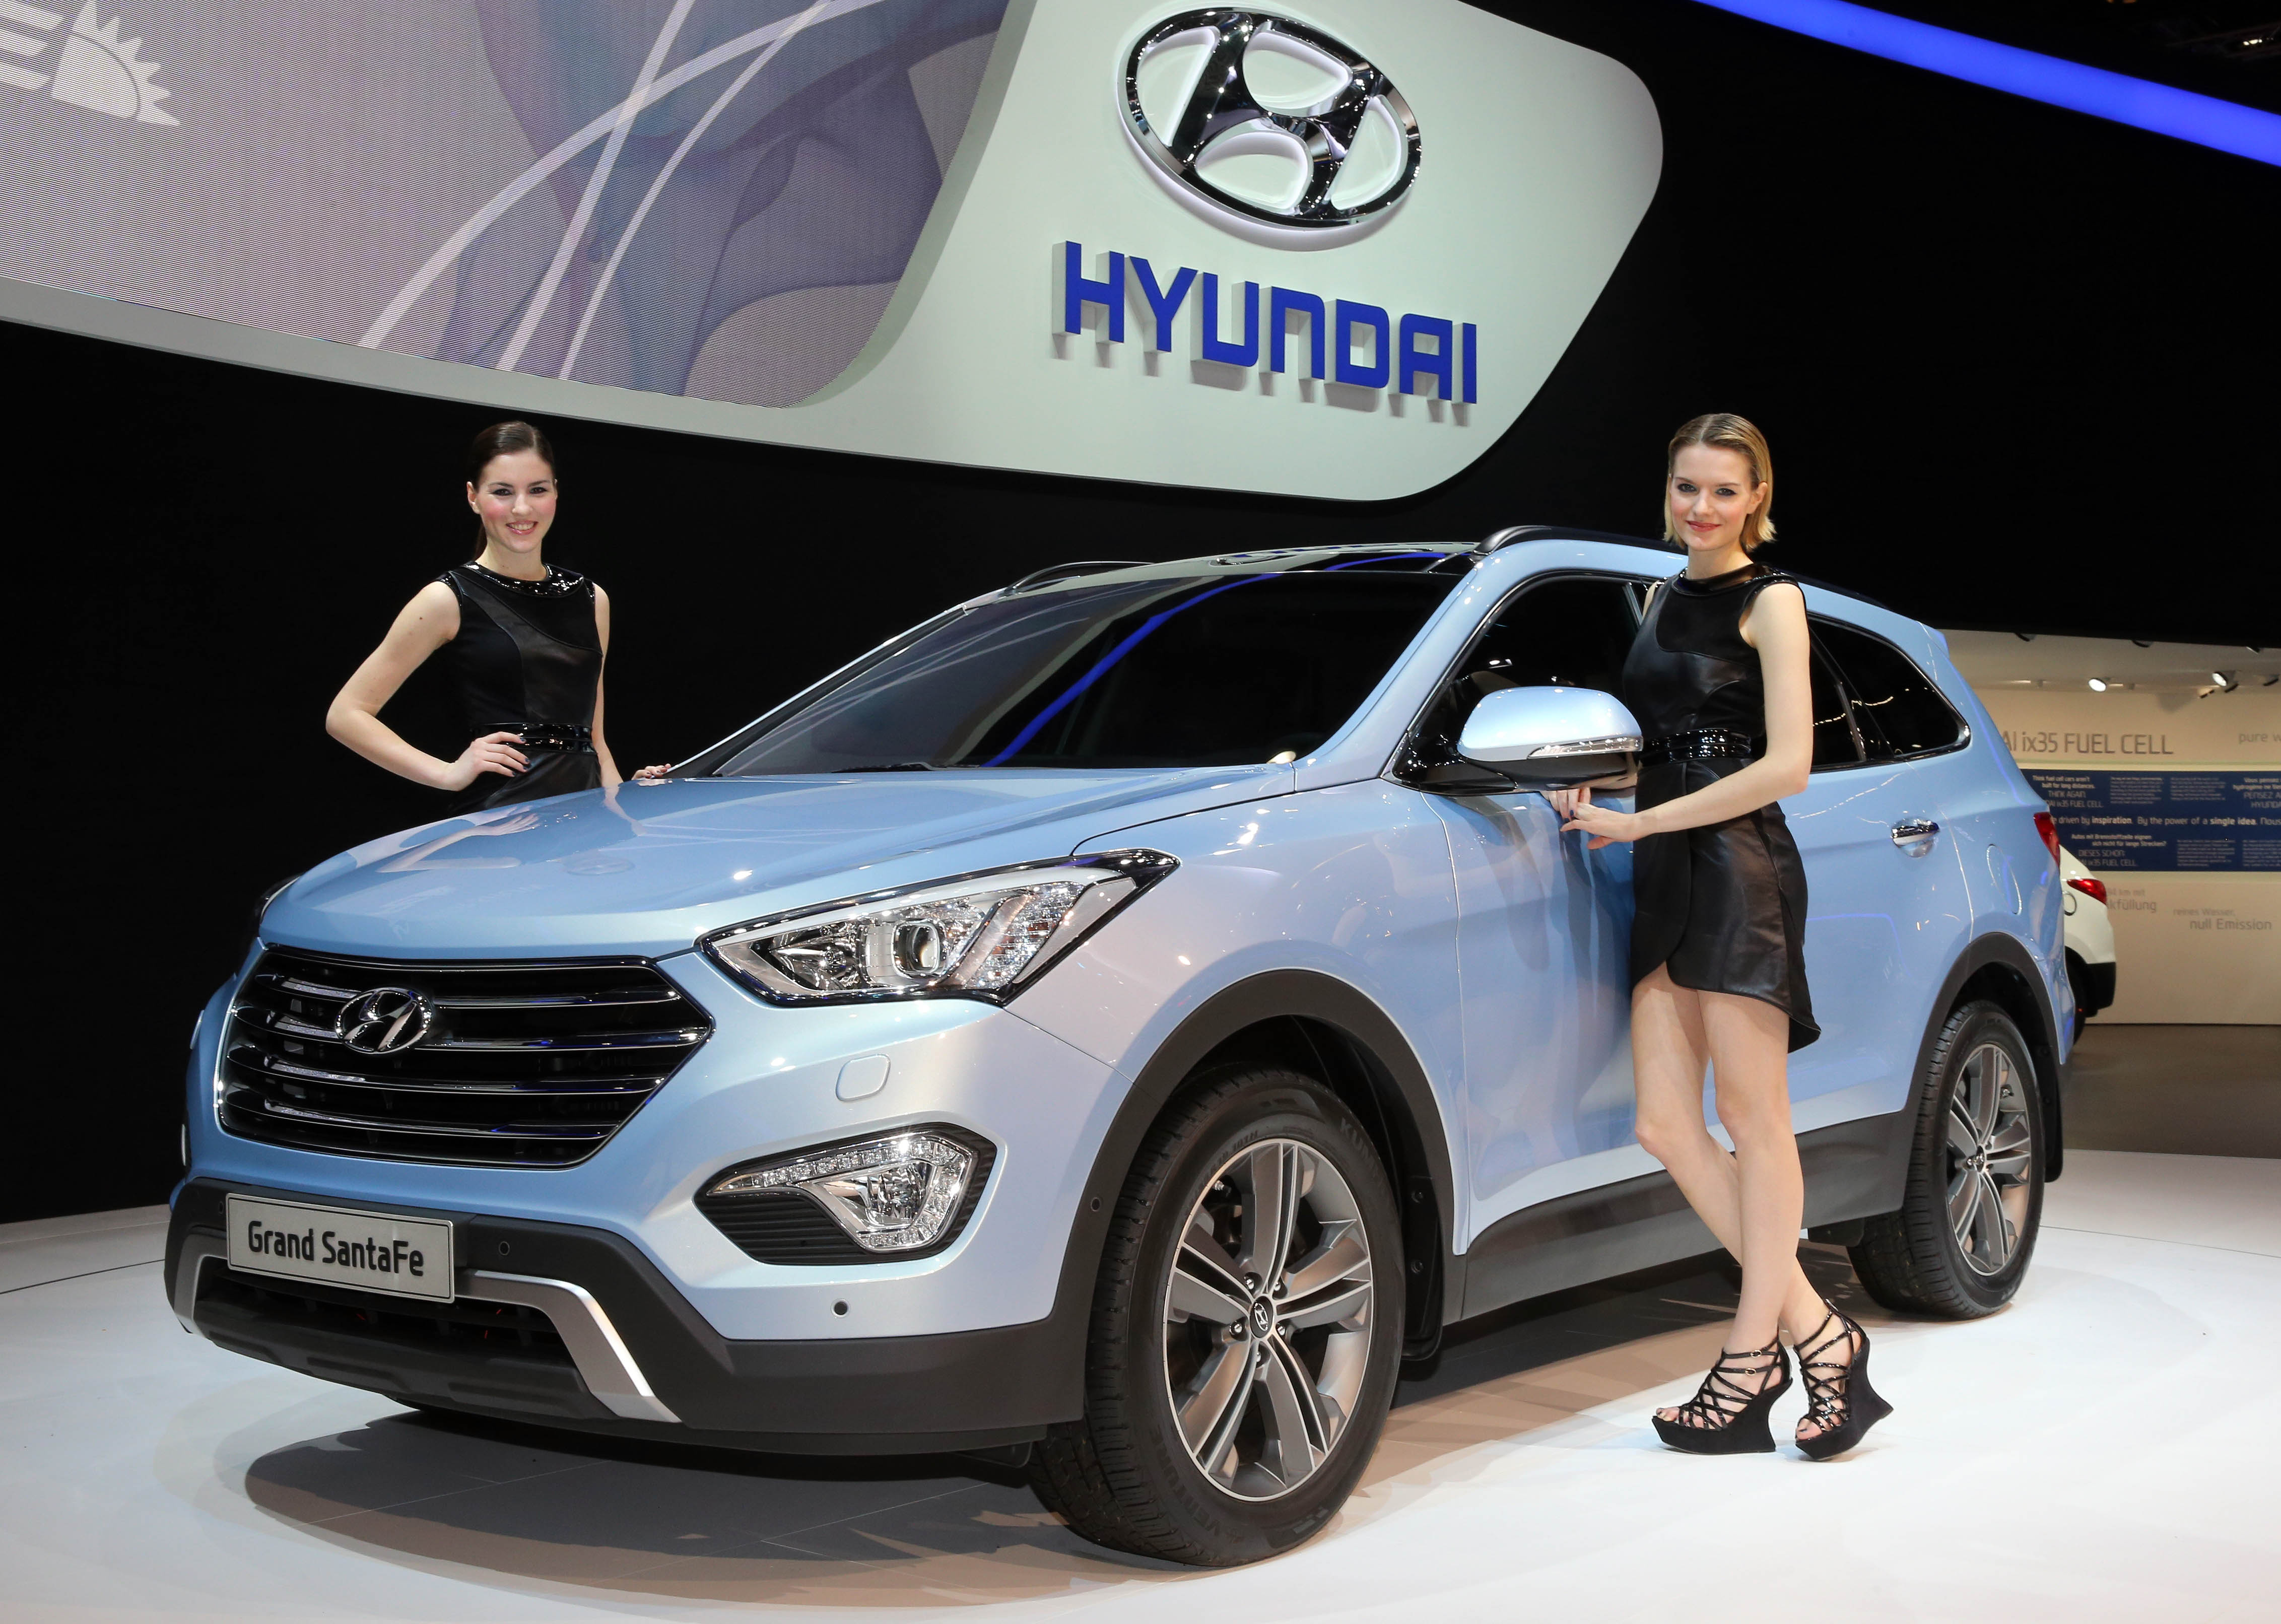 chicago overview lawn oak why com ext gallery accent happy new hyundai buy dealership htm il in